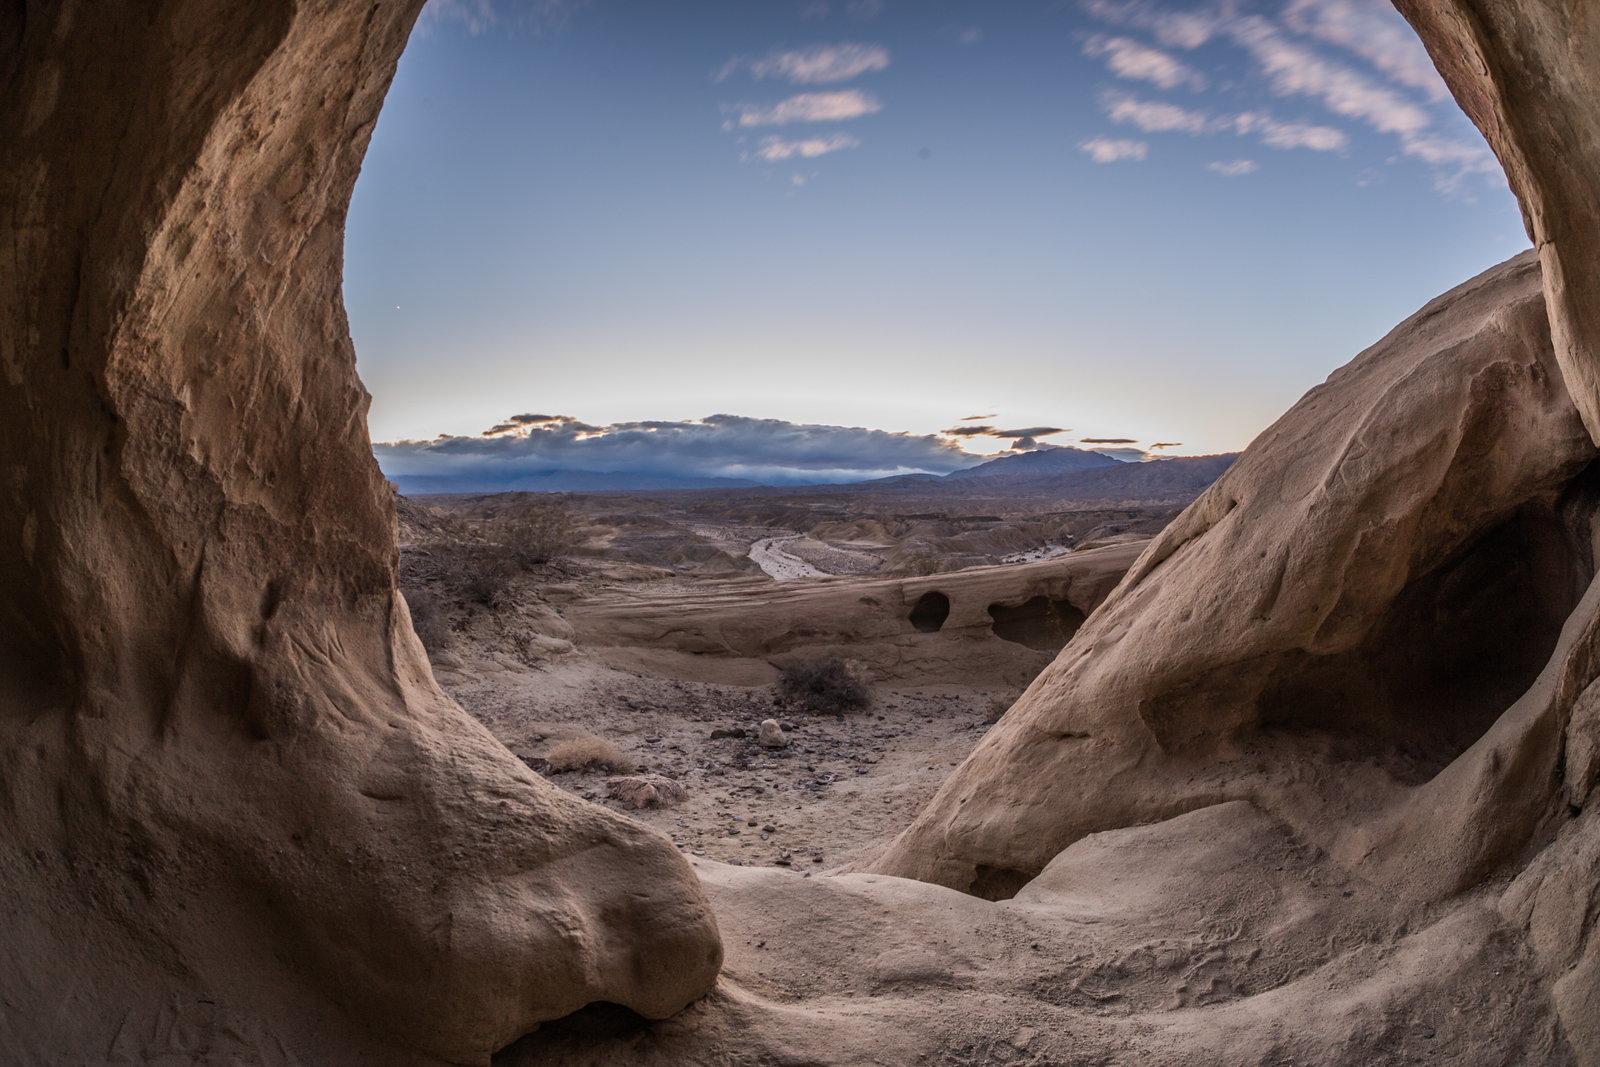 Looking Through Some Sandstone Wind Caves in the Anza-Borrego Desert